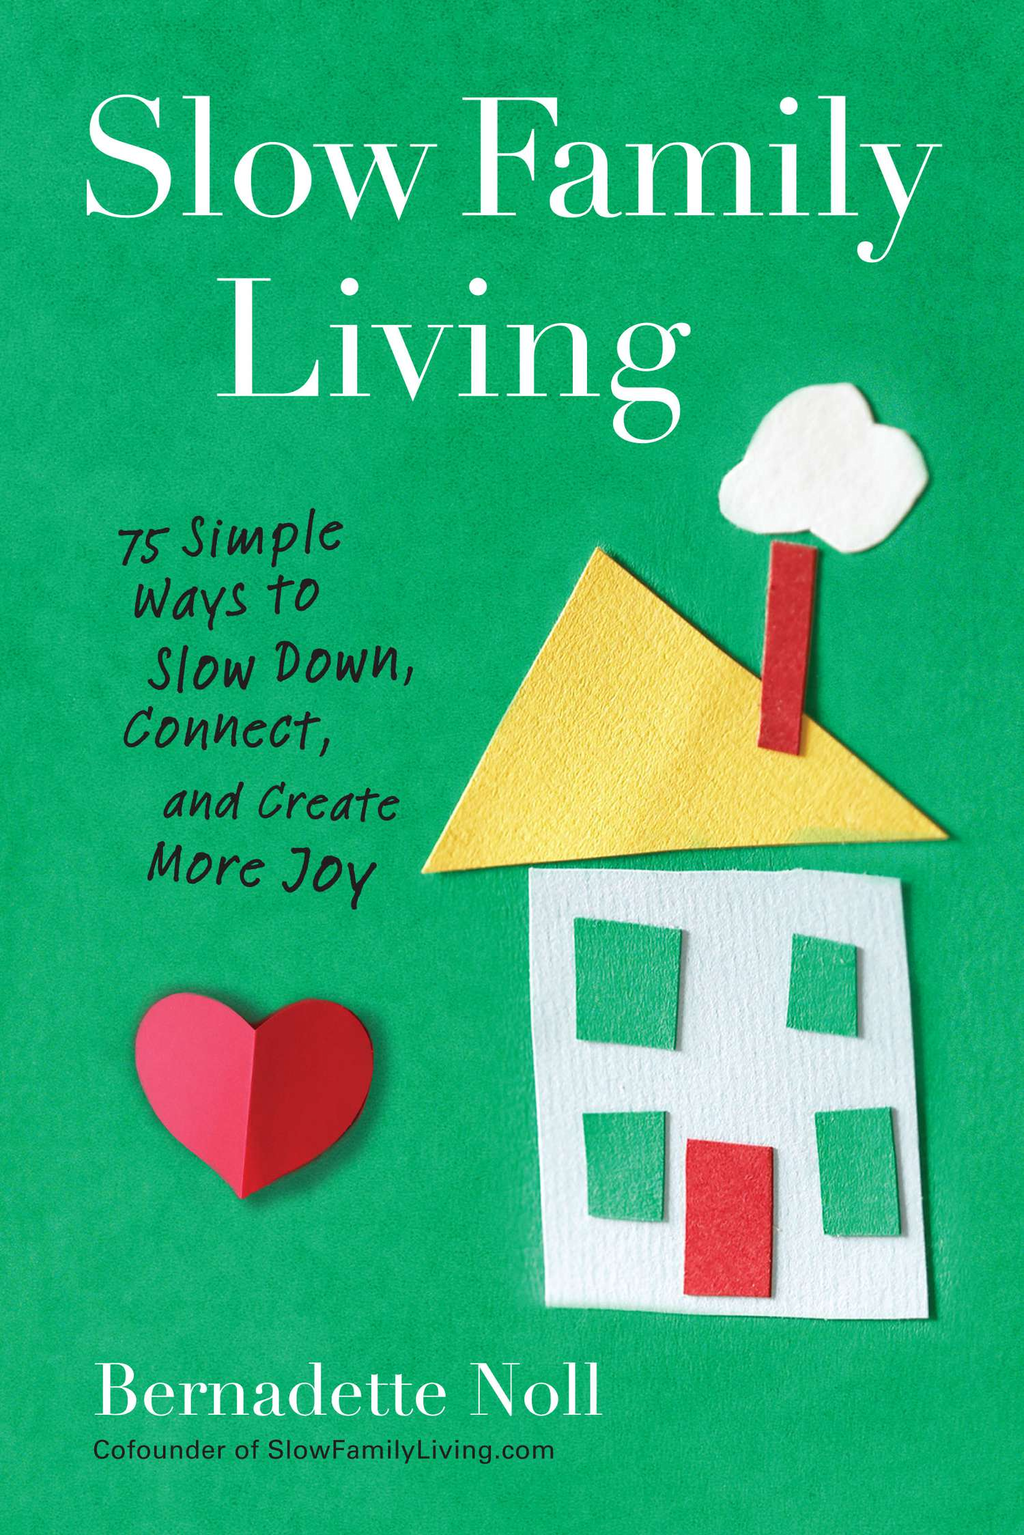 Slow Family Living By: Bernadette Noll